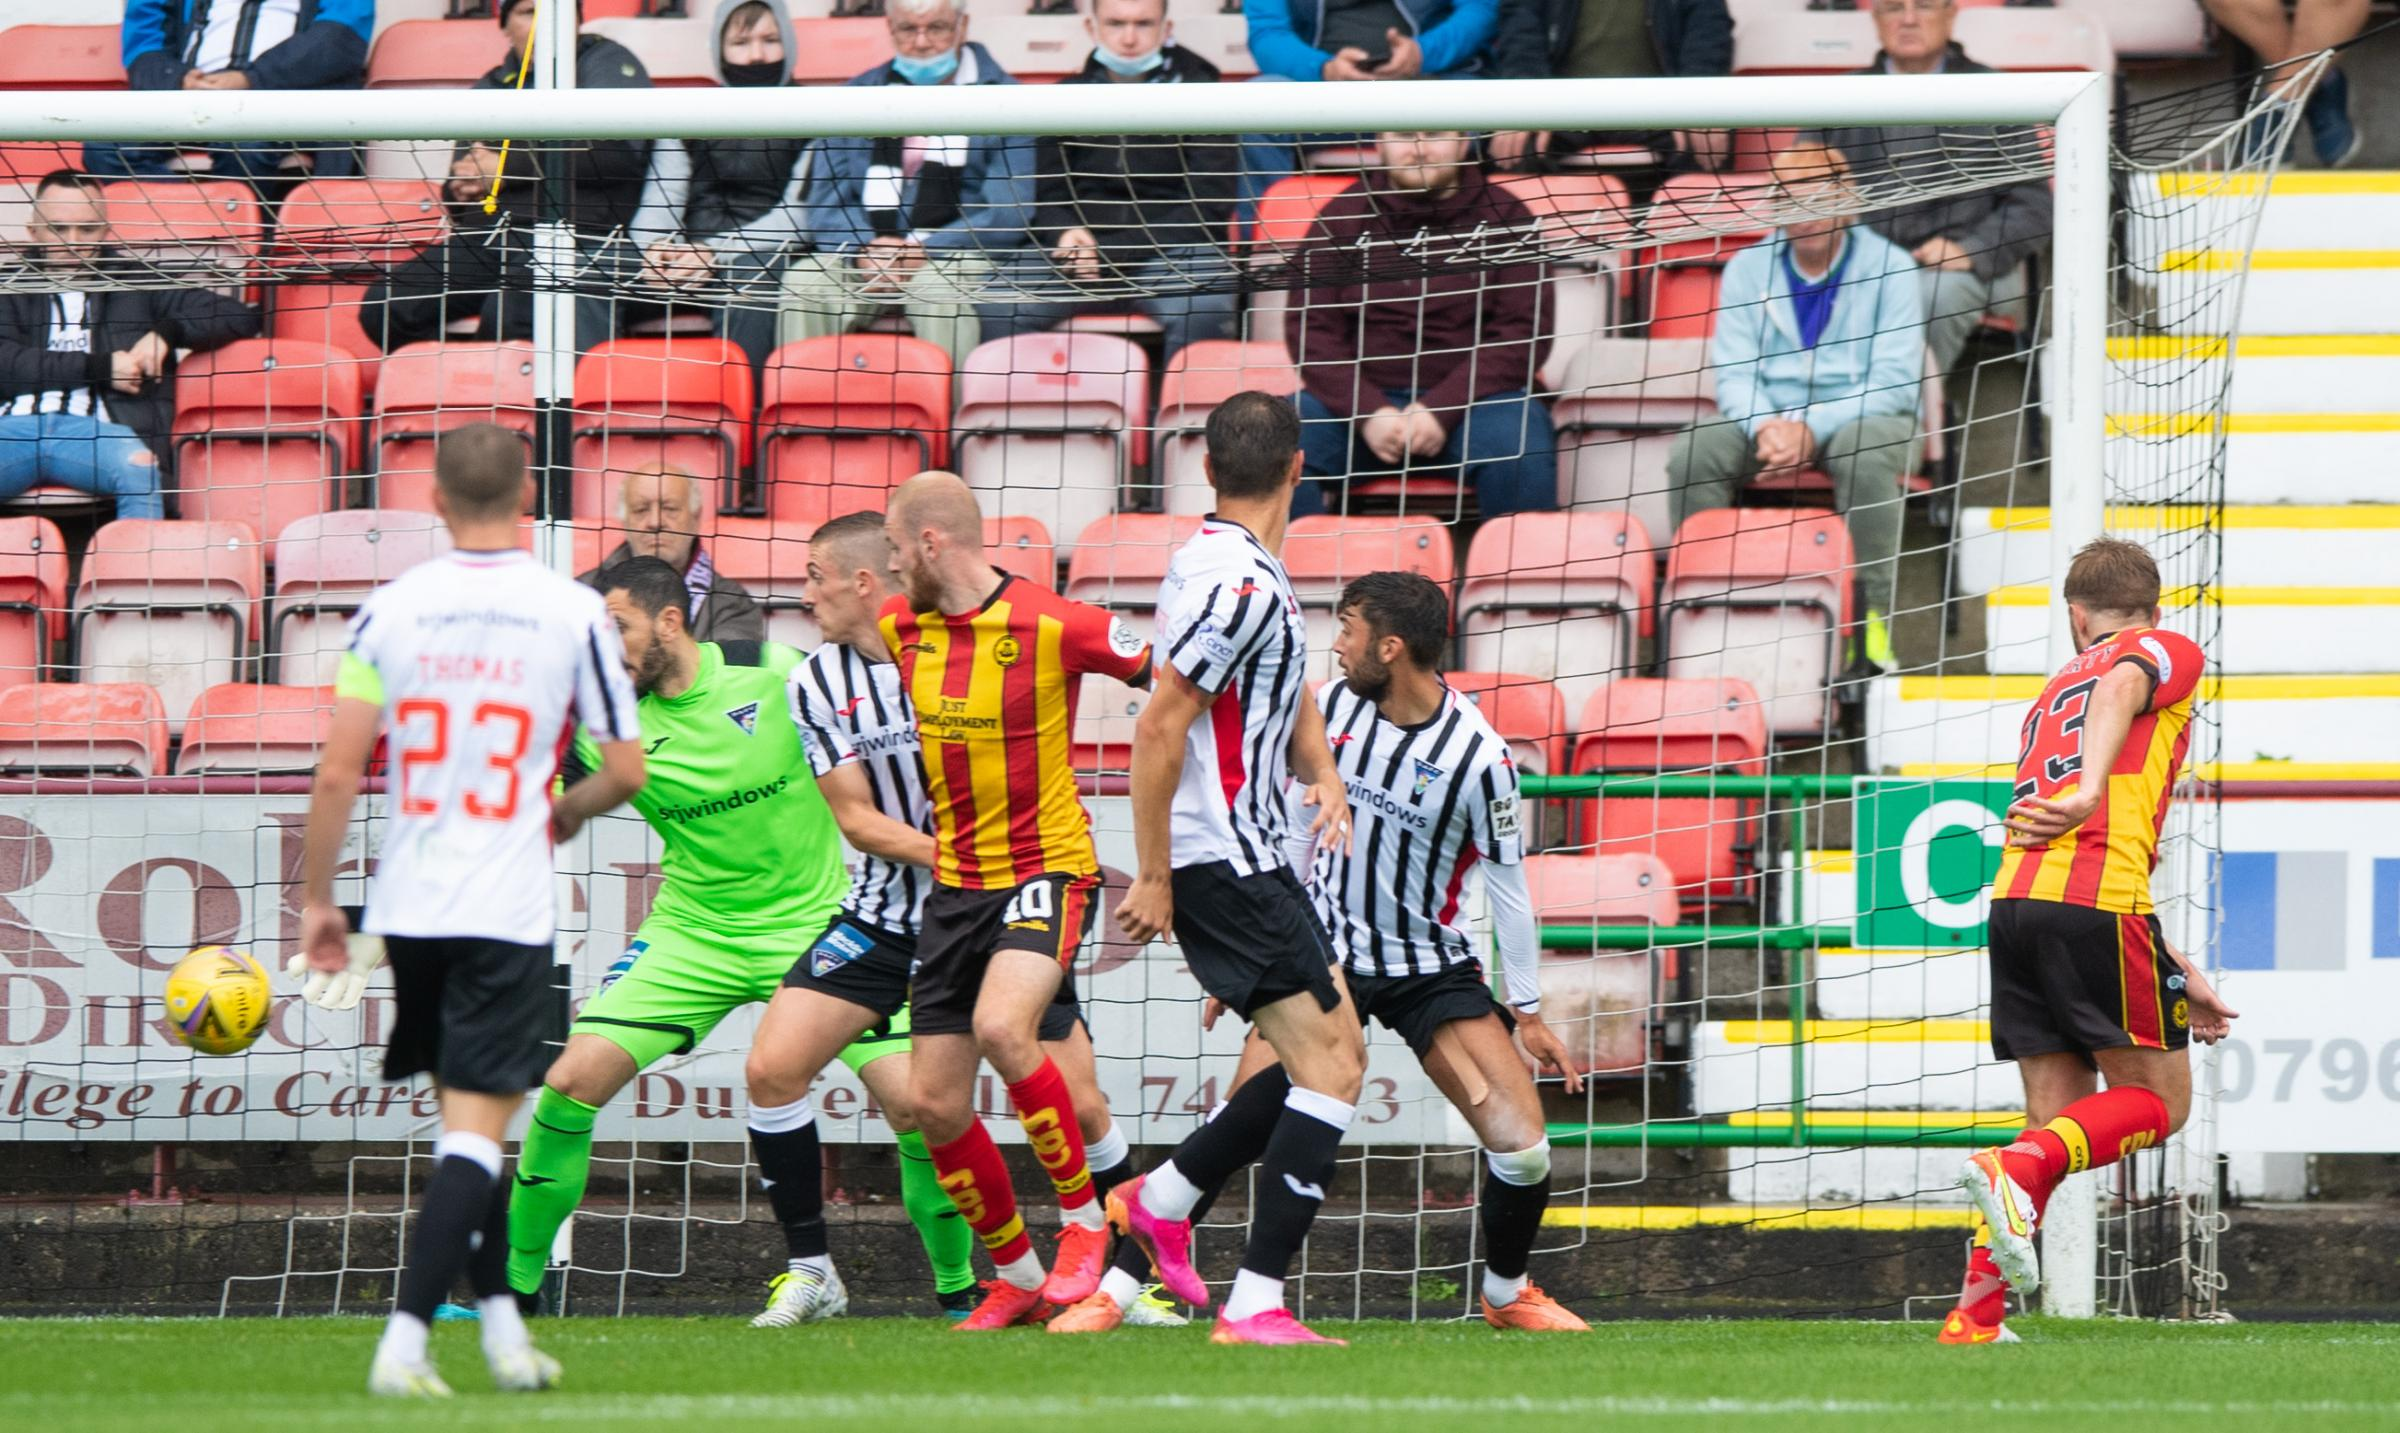 Dunfermline 0-3 Partick Thistle: Jags make most of below-par hosts to move top of the table